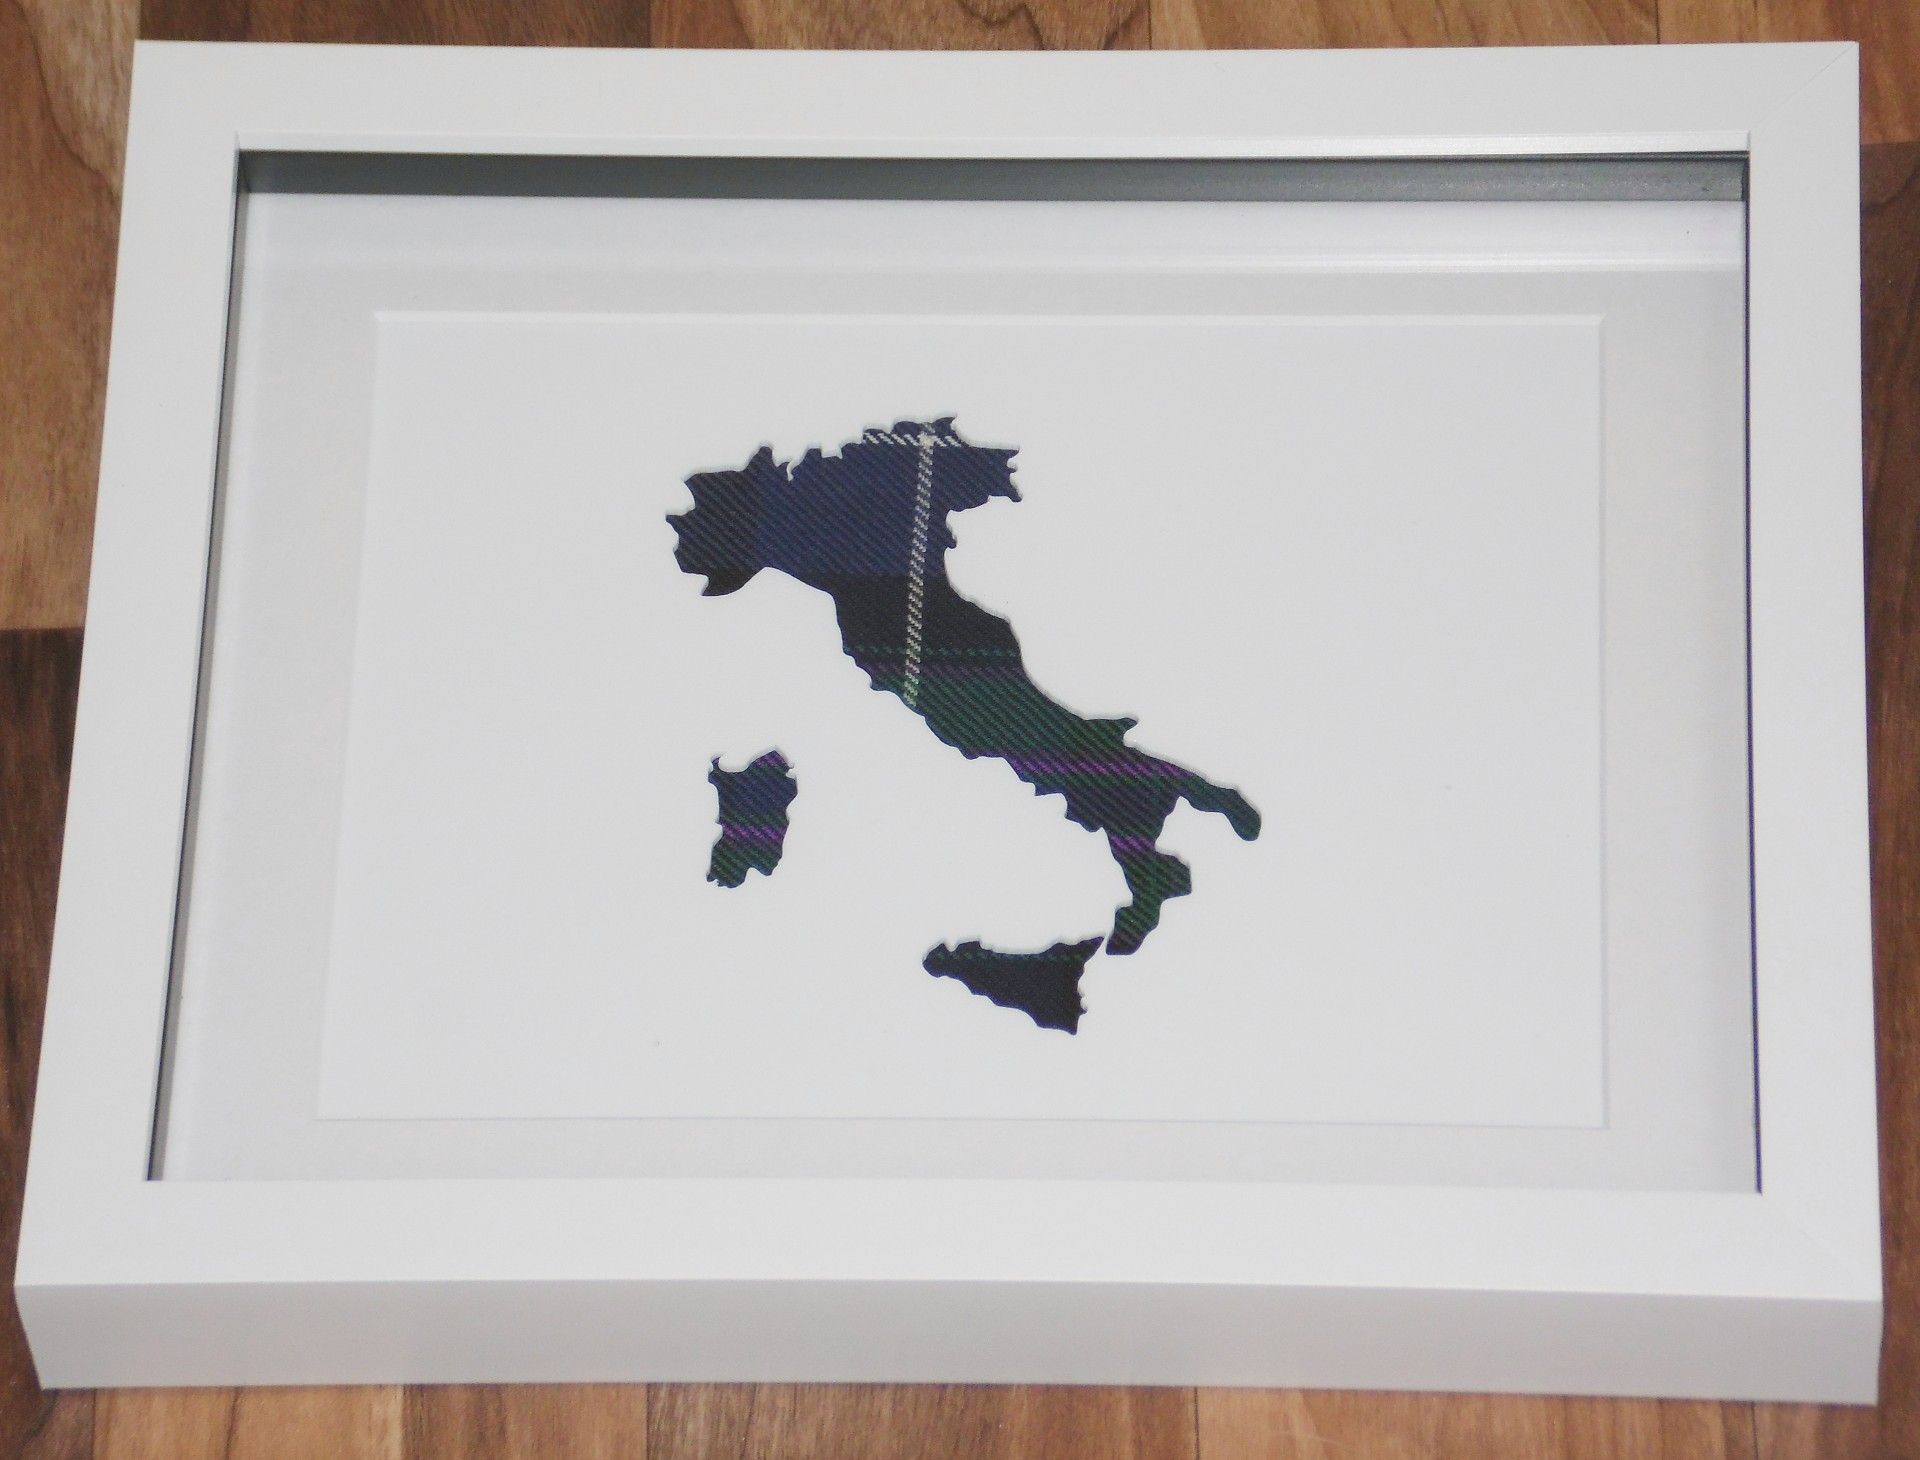 Italy cut out